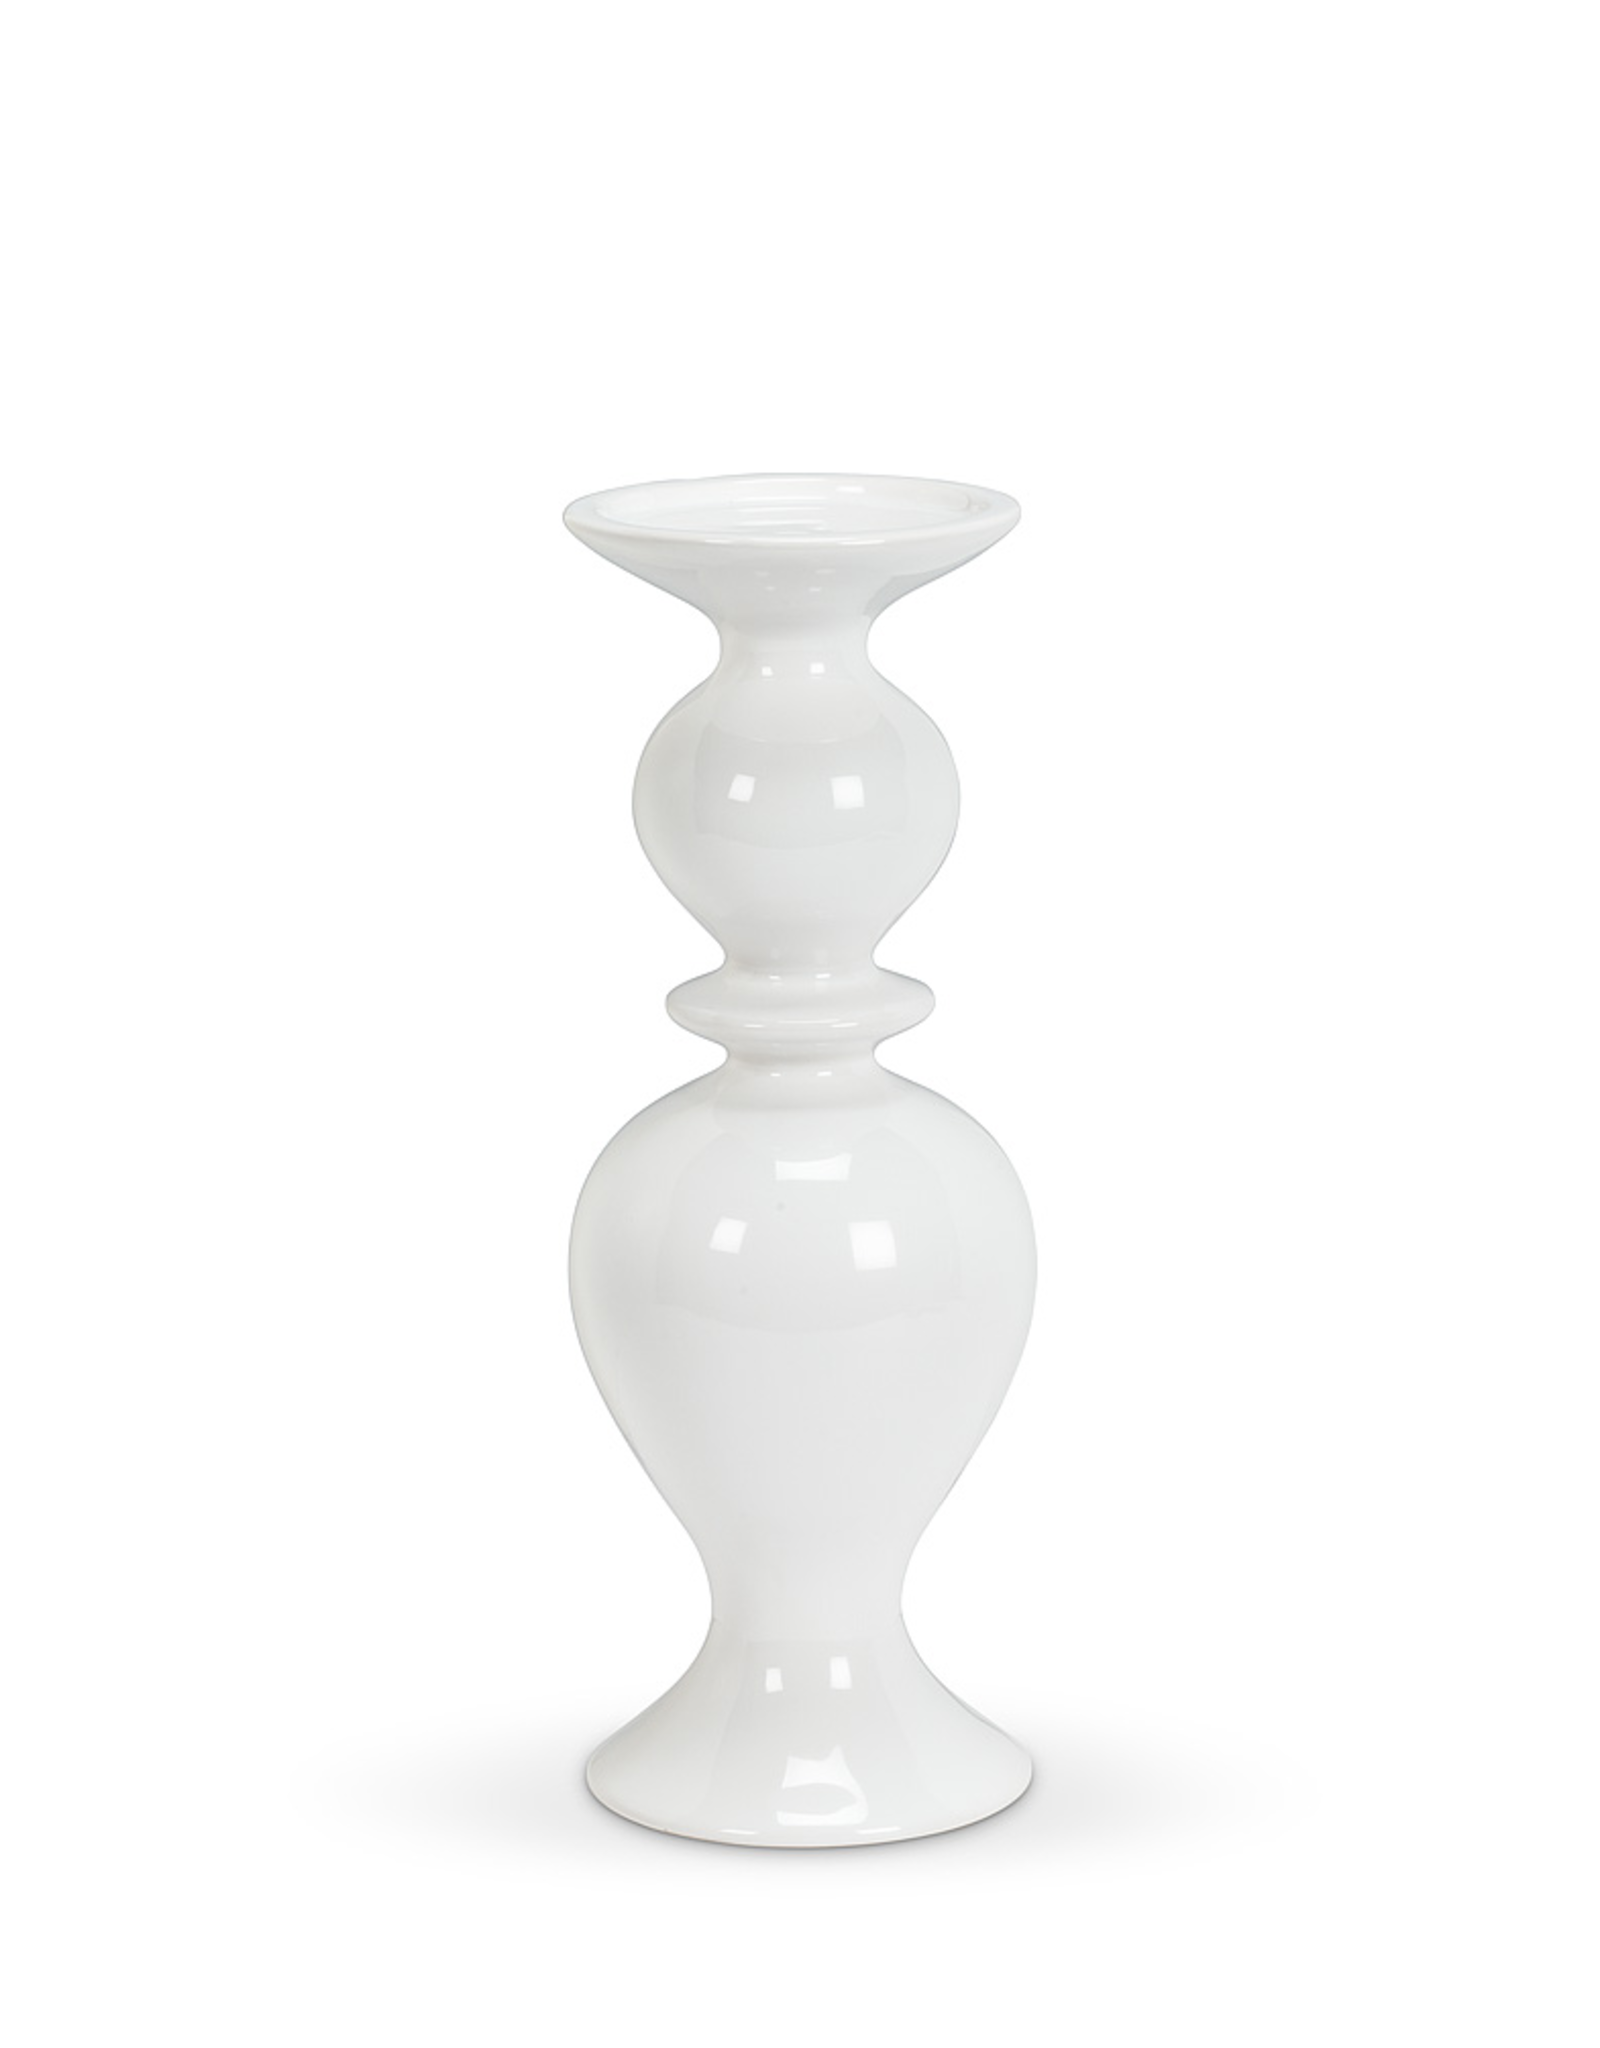 Shapely White Pillar Holder, Medium